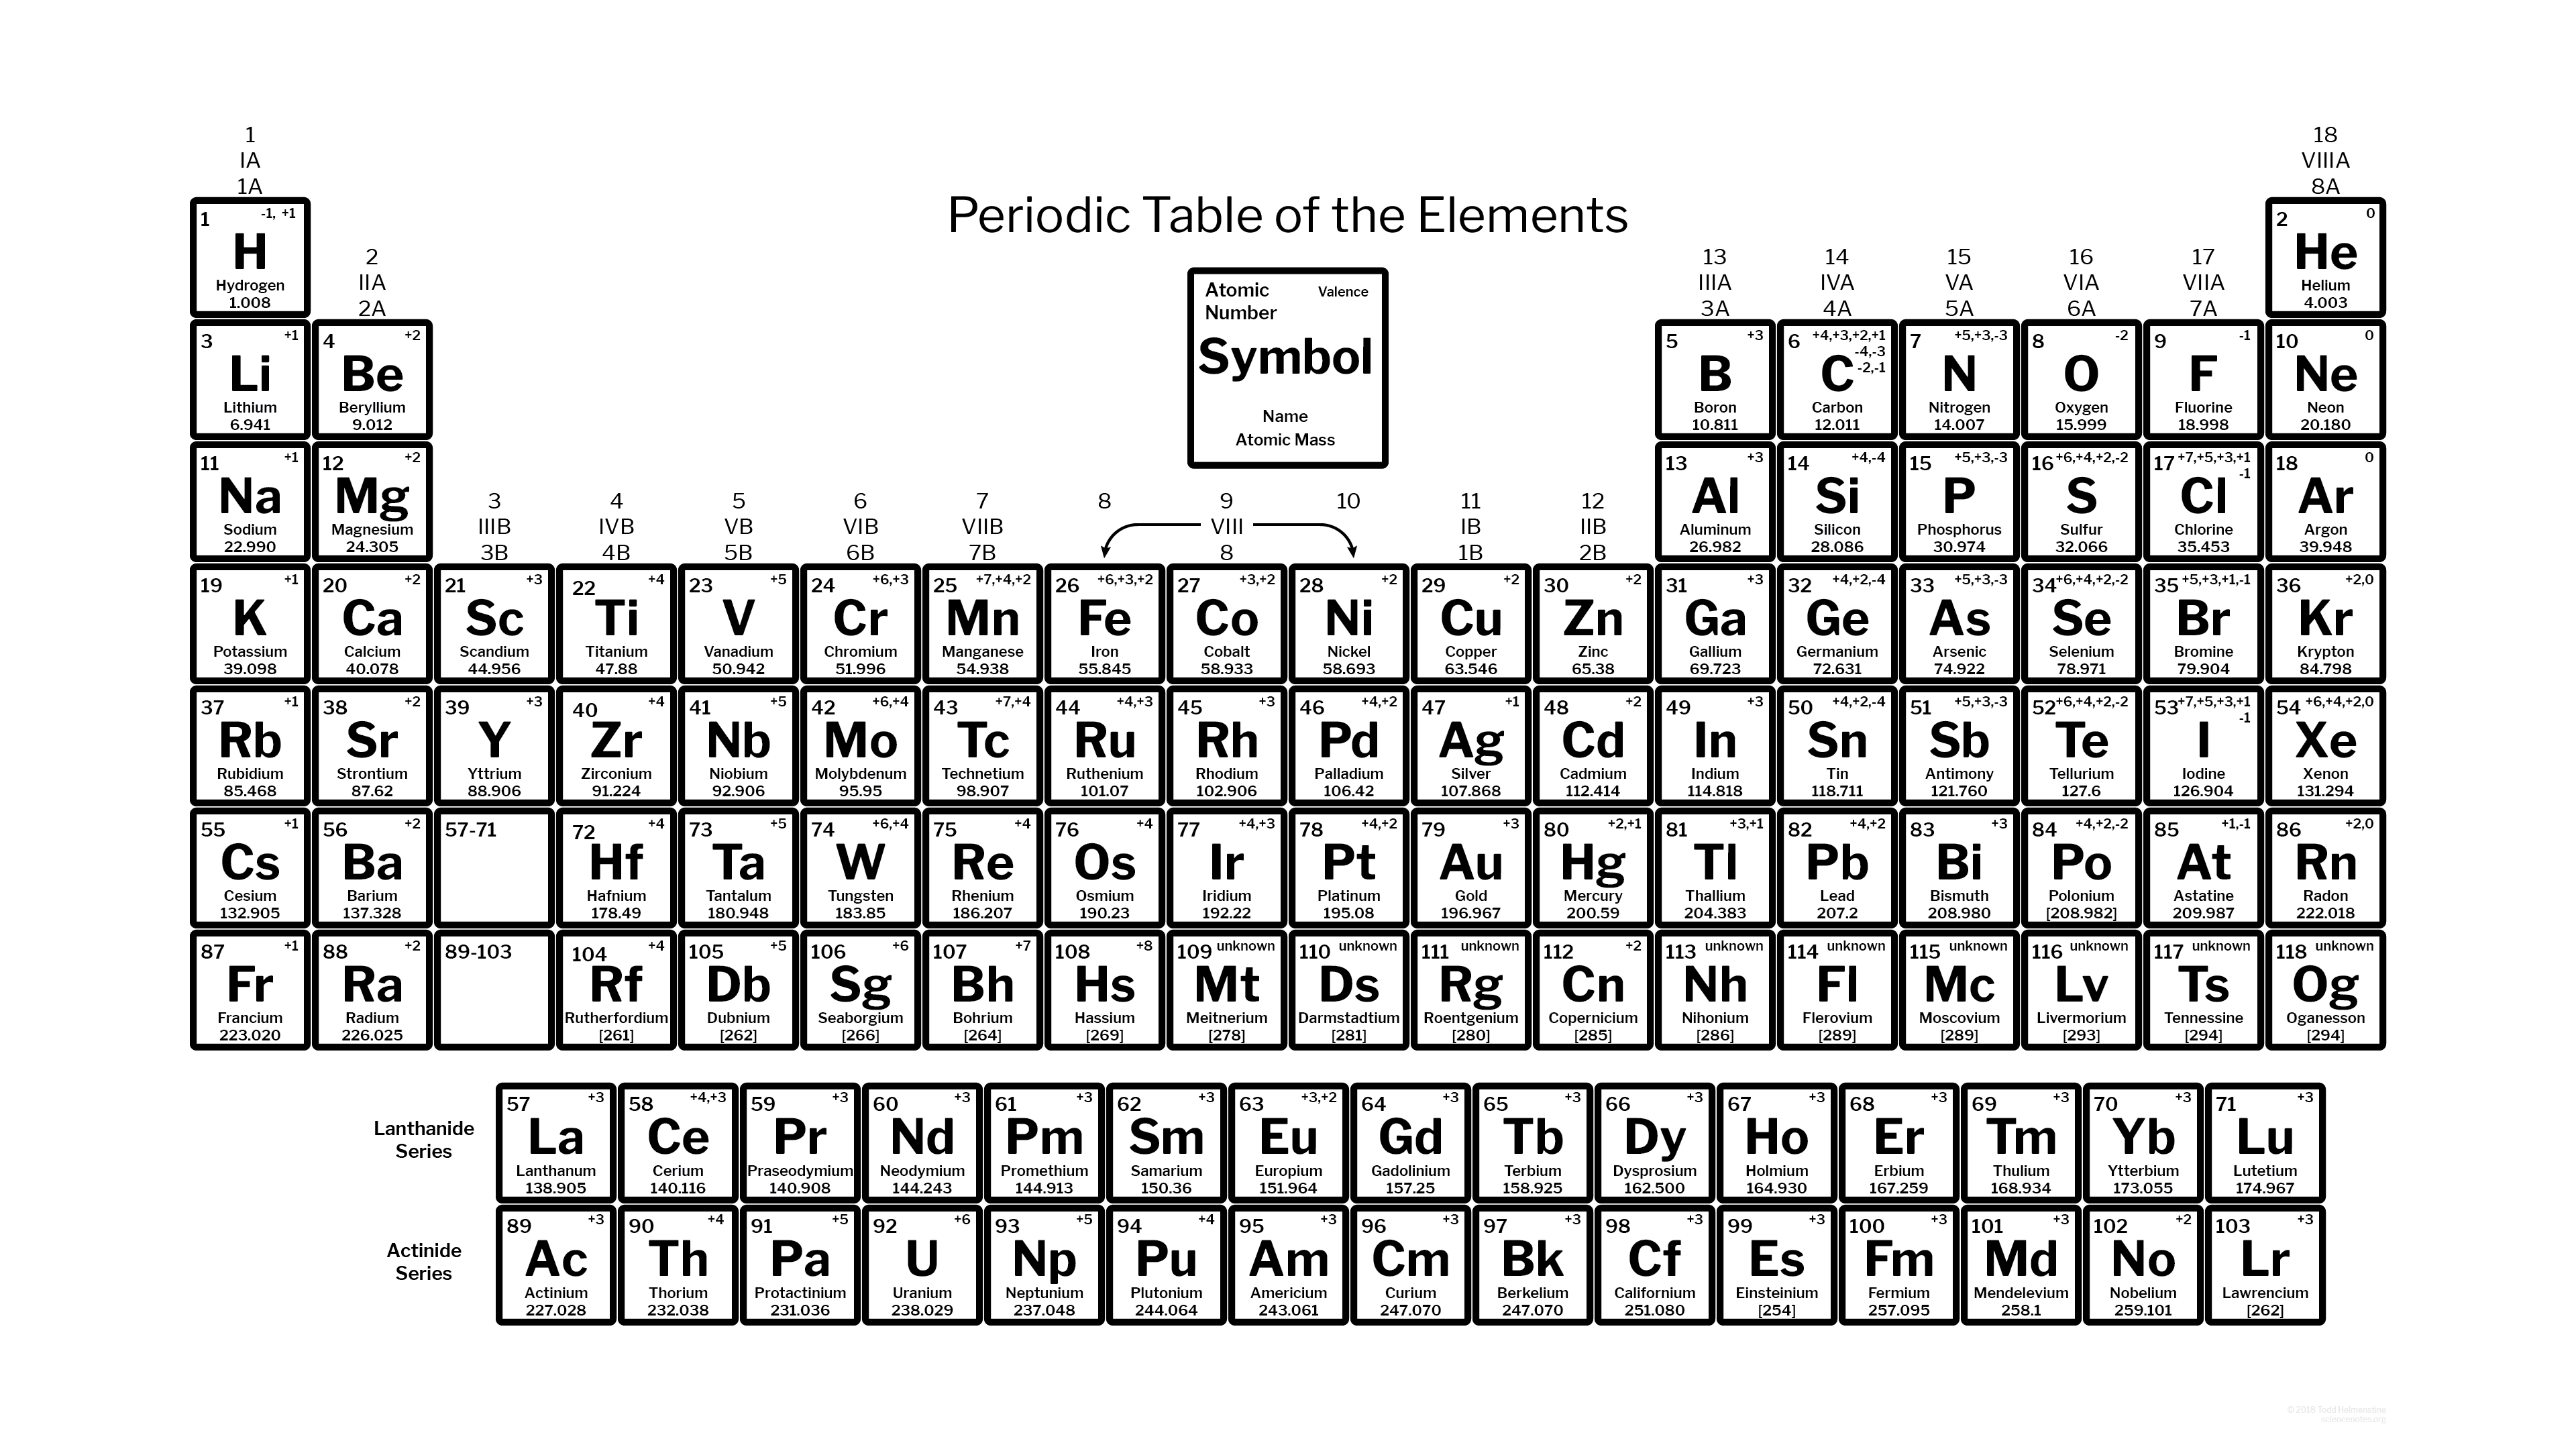 Periodic table with charges 118 elements black and white periodic table with 118 elements and charges urtaz Choice Image